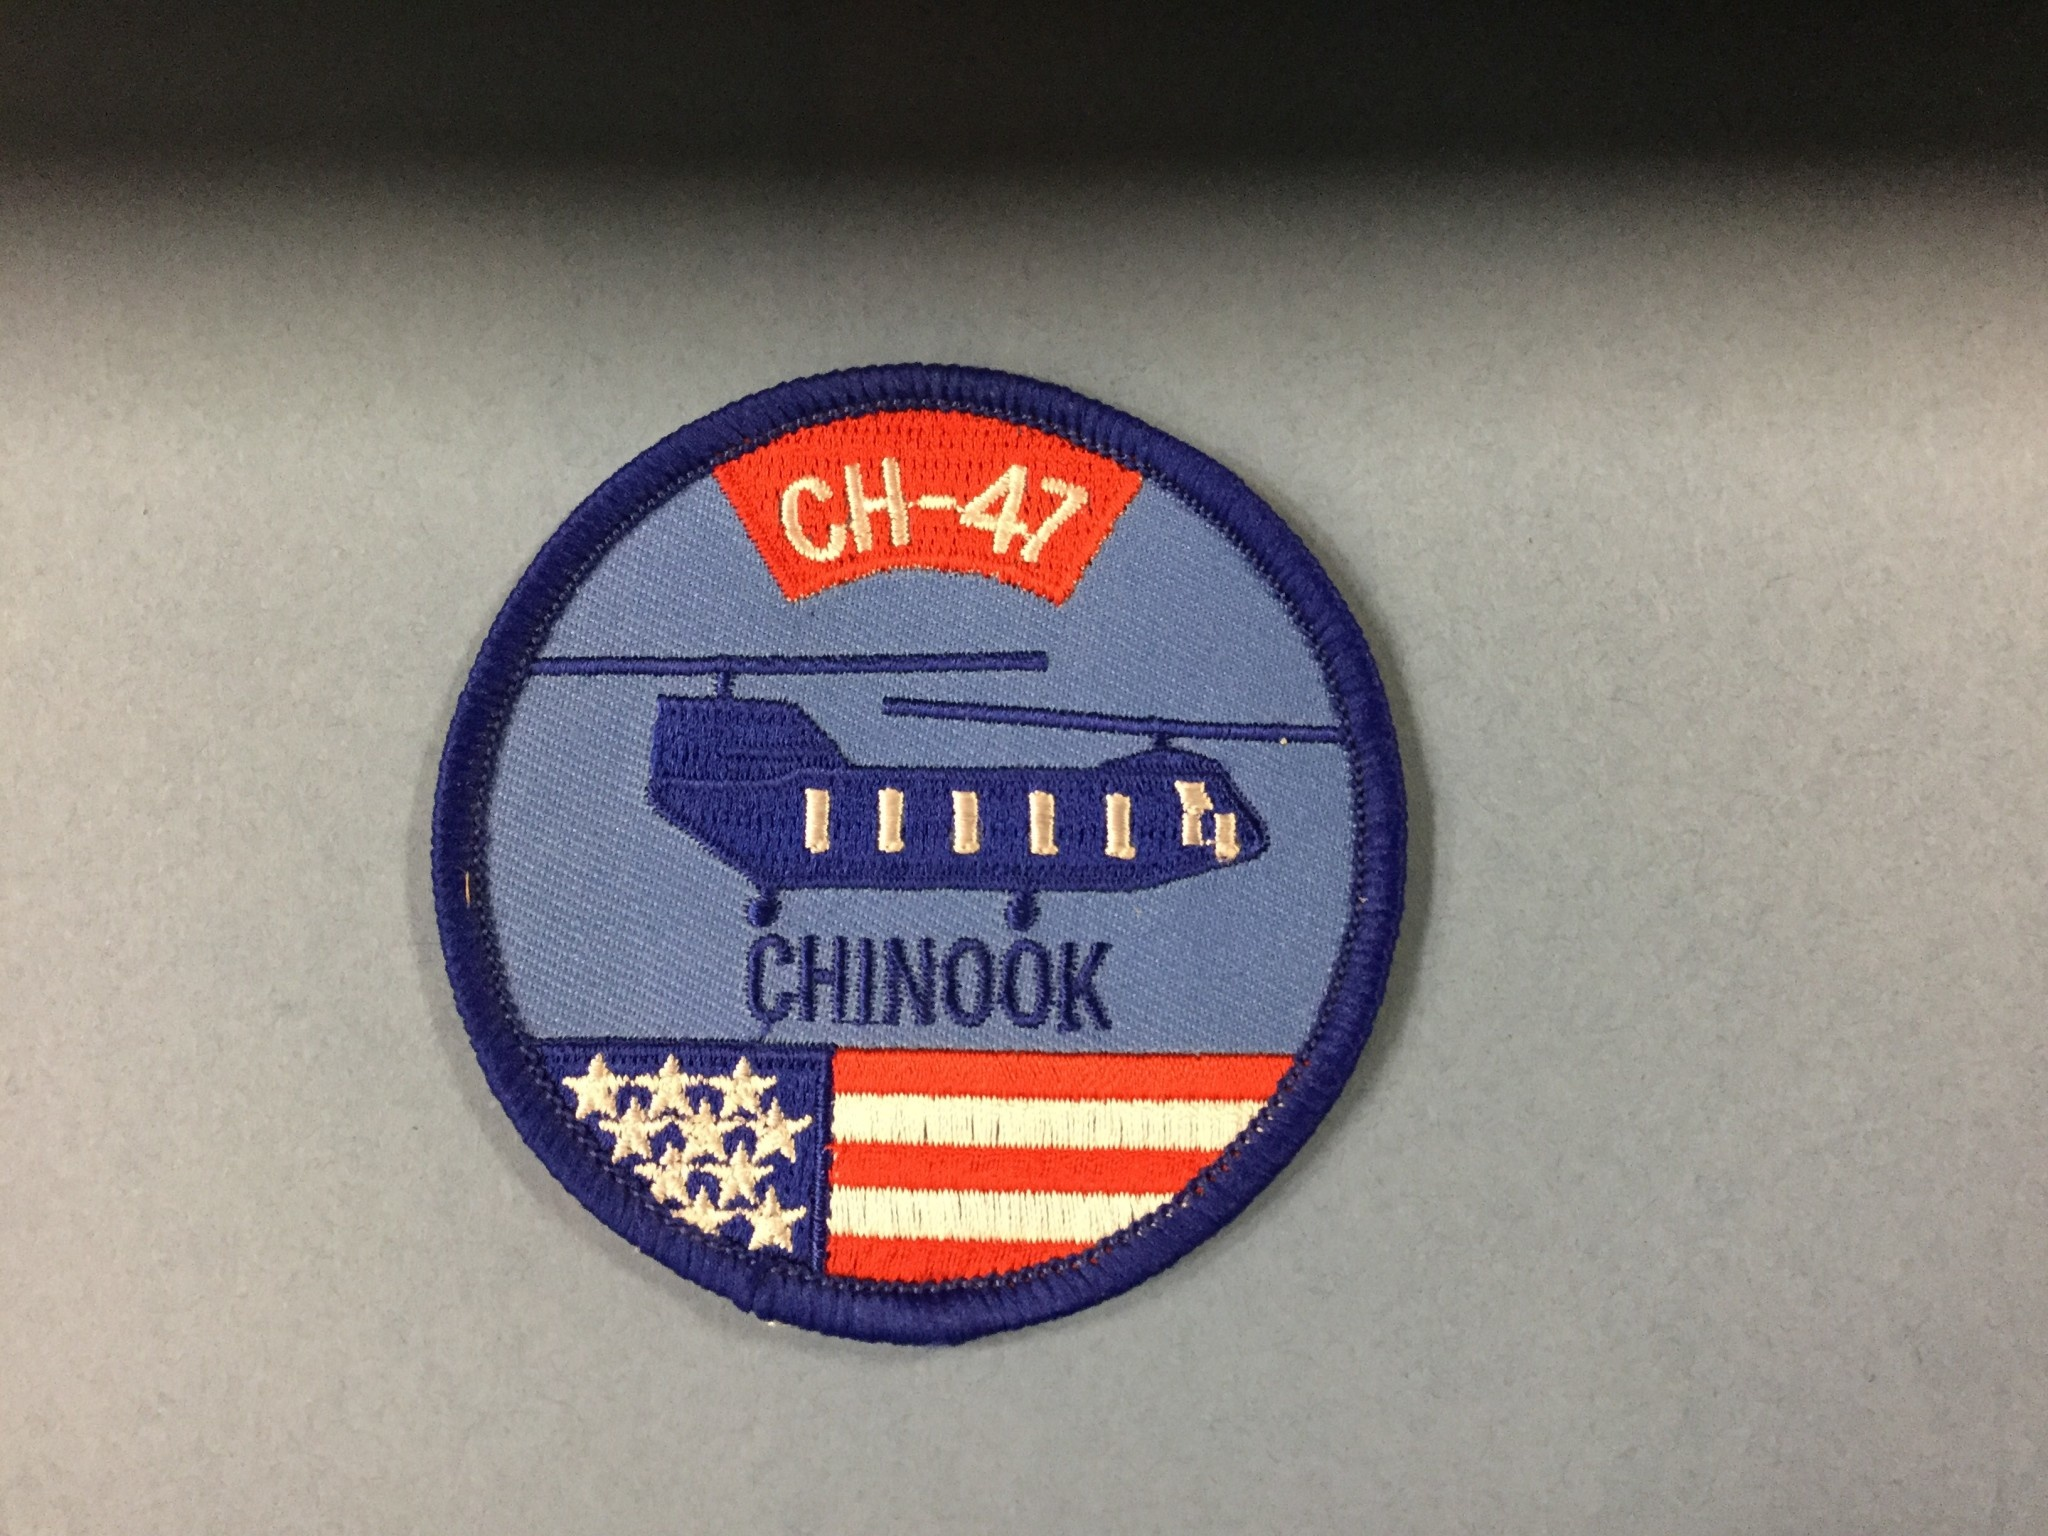 HOOVER'S MFG CO. CHINOOK, CH-47